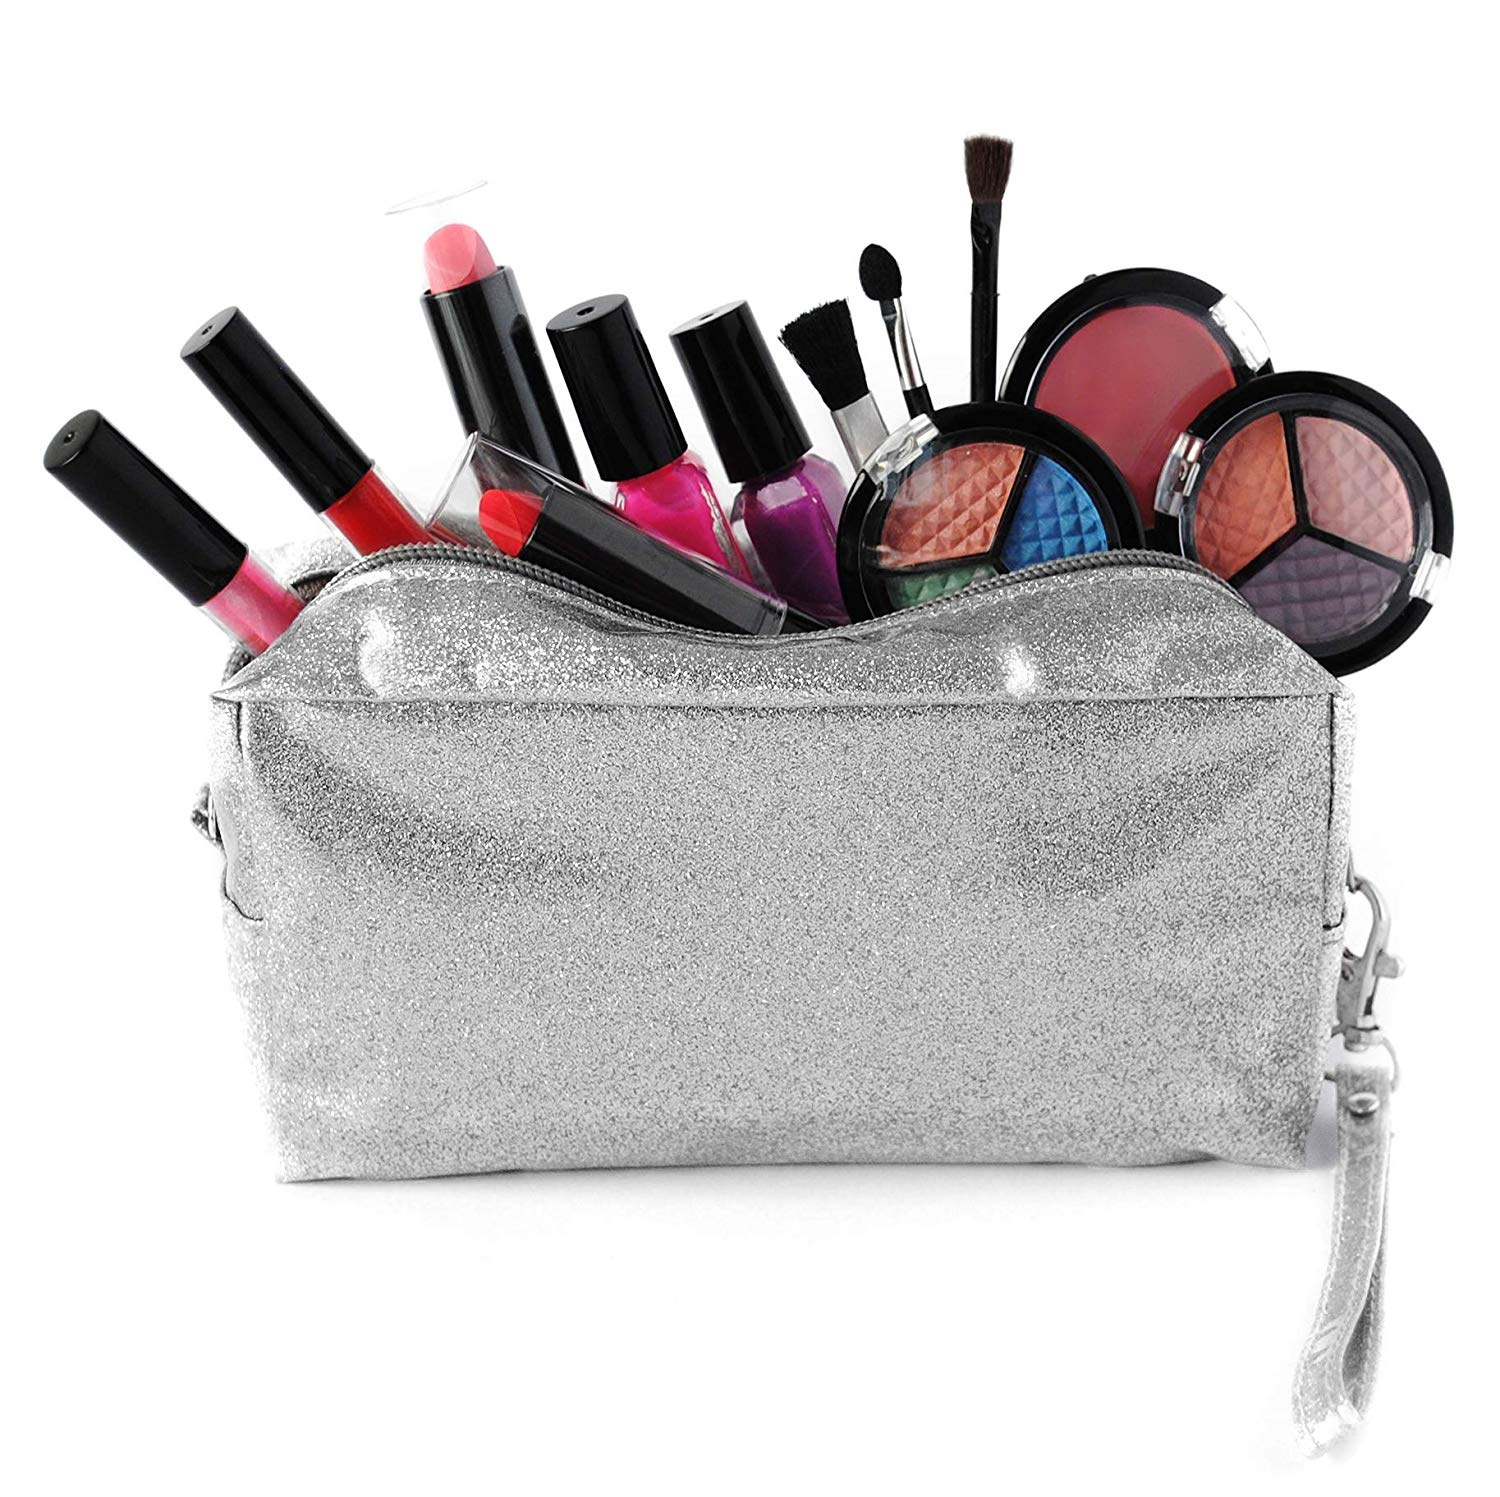 c074ddf495ab SmartEmily Washable Kids Makeup Set for Girls and Teens with Glitter  Cosmetics Bag Silver Edition